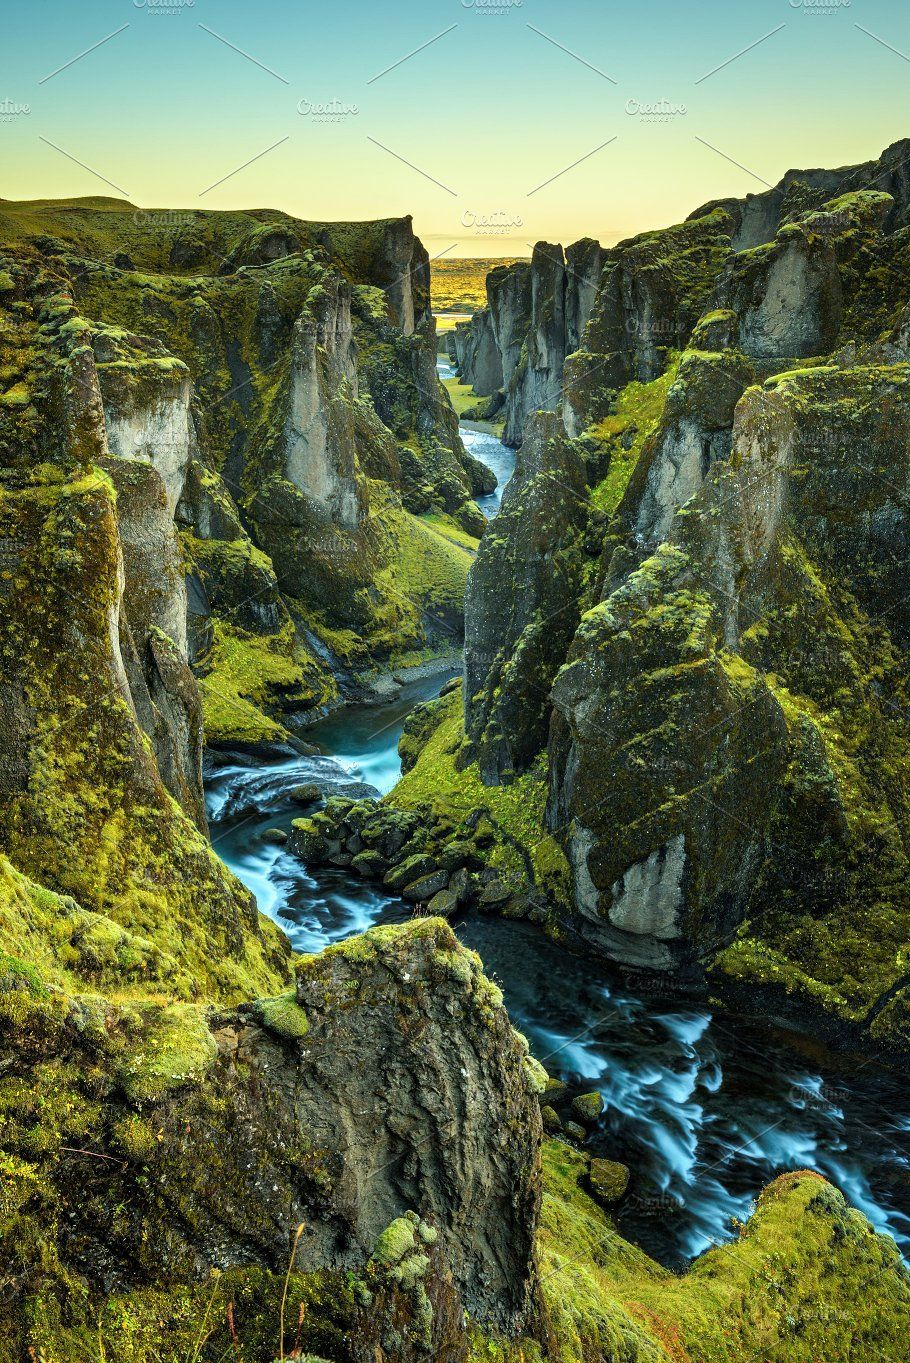 Fjadrargljufur canyon and river in south east Iceland by Nick Fox  on Creative M... -  Fjadrargljufur canyon and river in south east Iceland by Nick Fox  on Creative Market Deep Fjadrarg - #